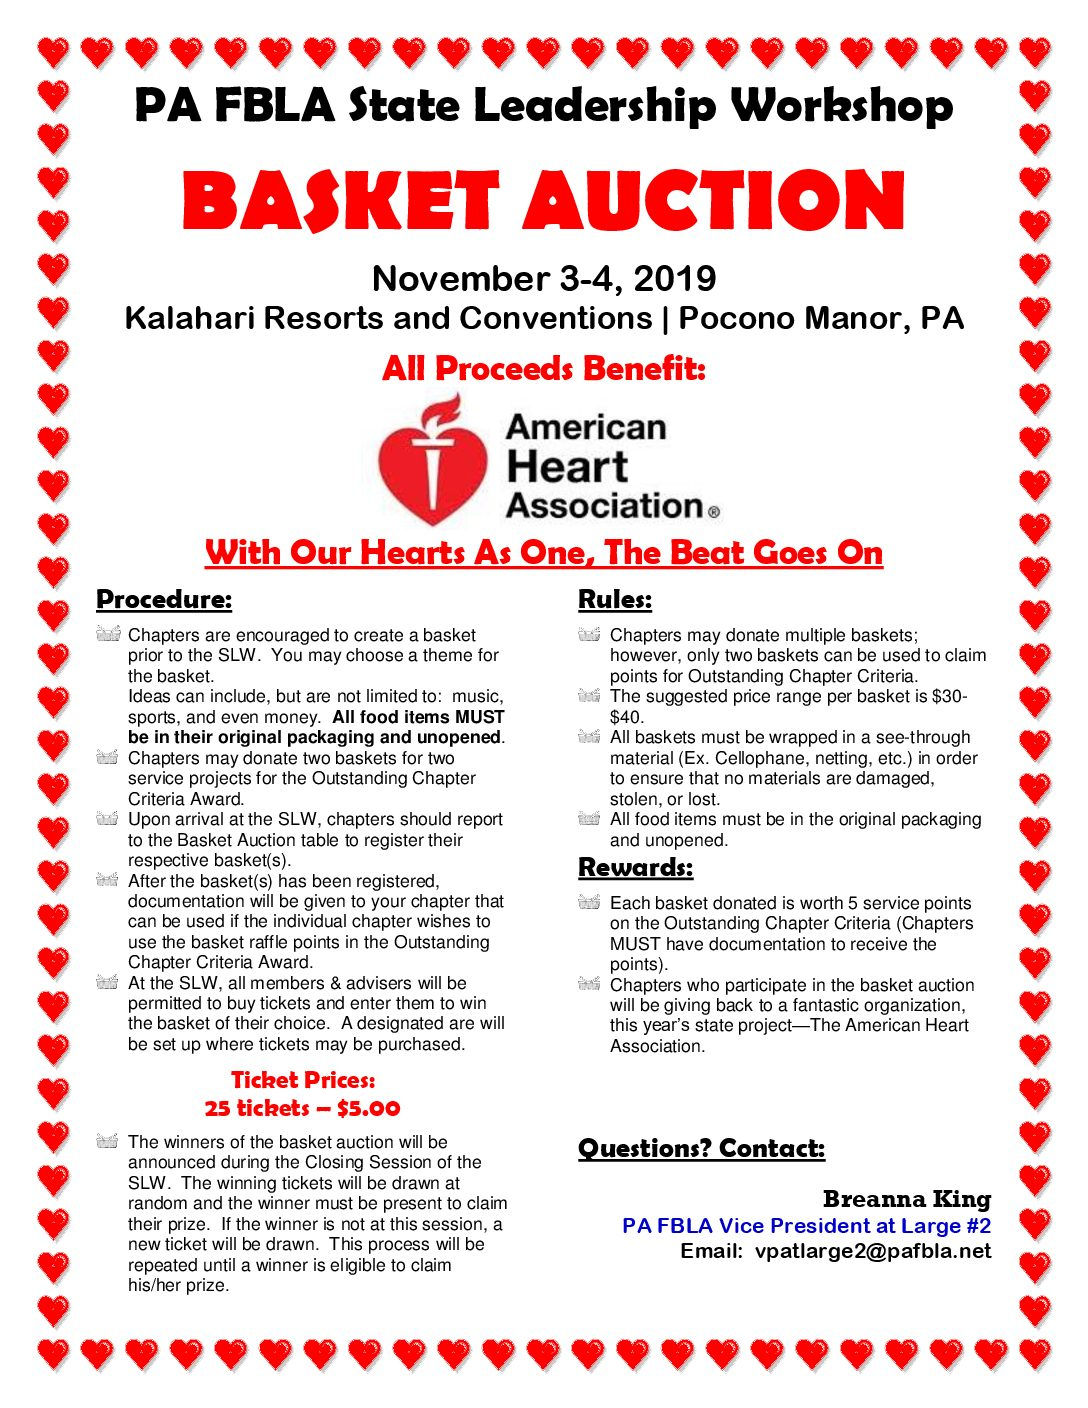 SLW Basket Auction to Benefit the American Heart Association